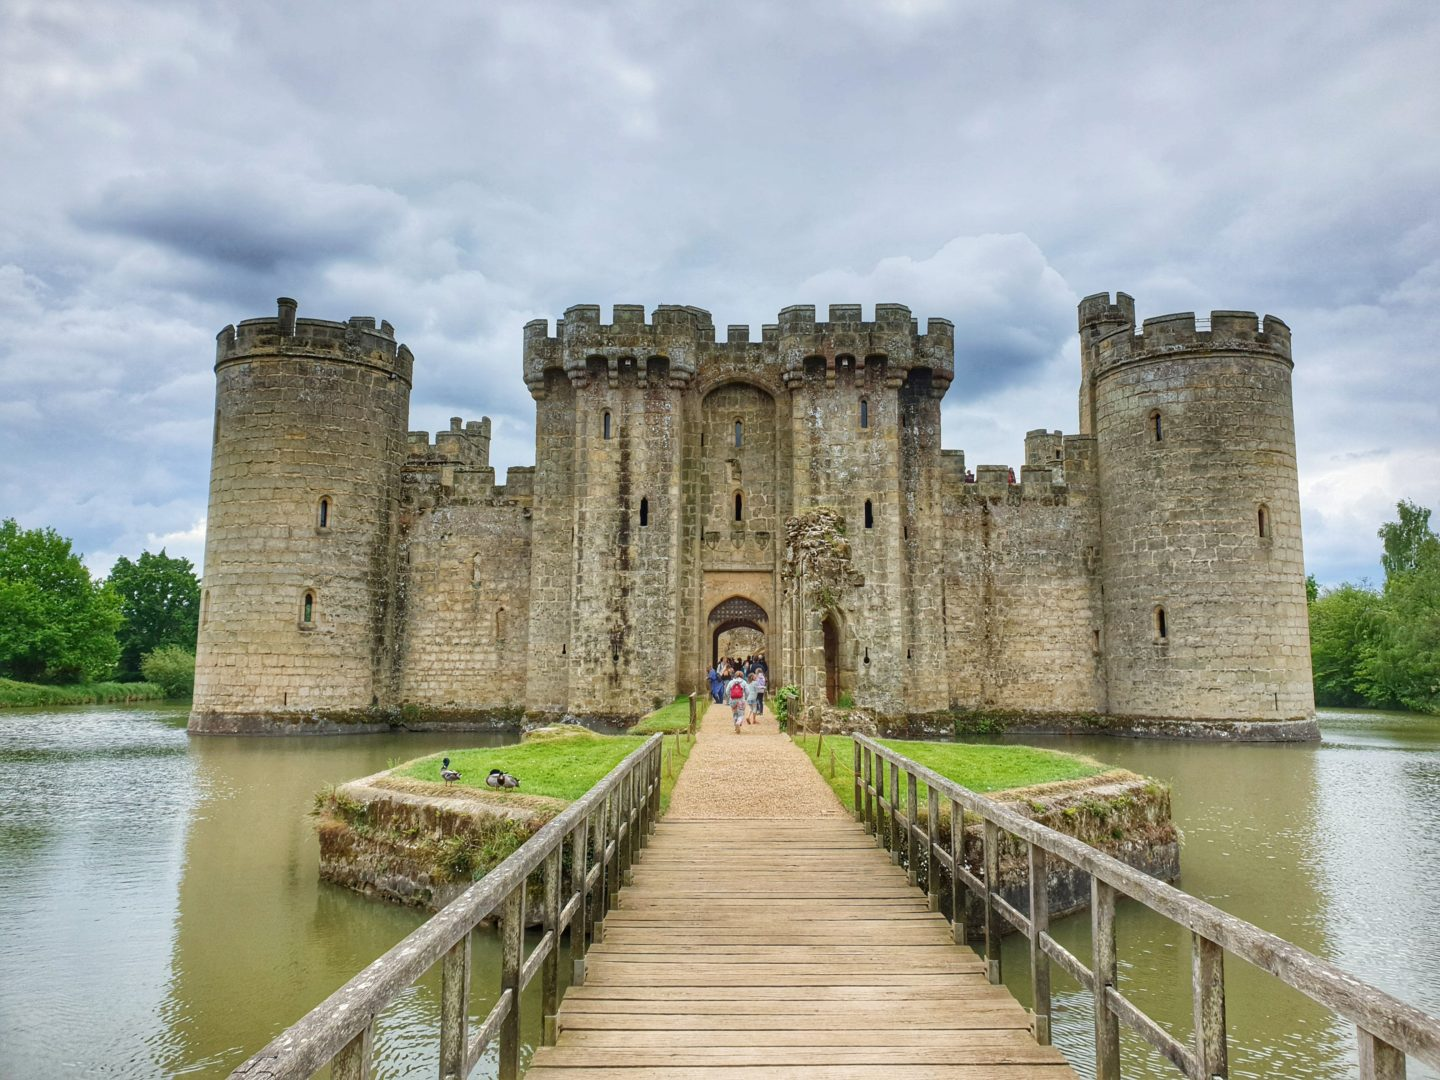 Visiting Bodiam Castle during our camping holiday